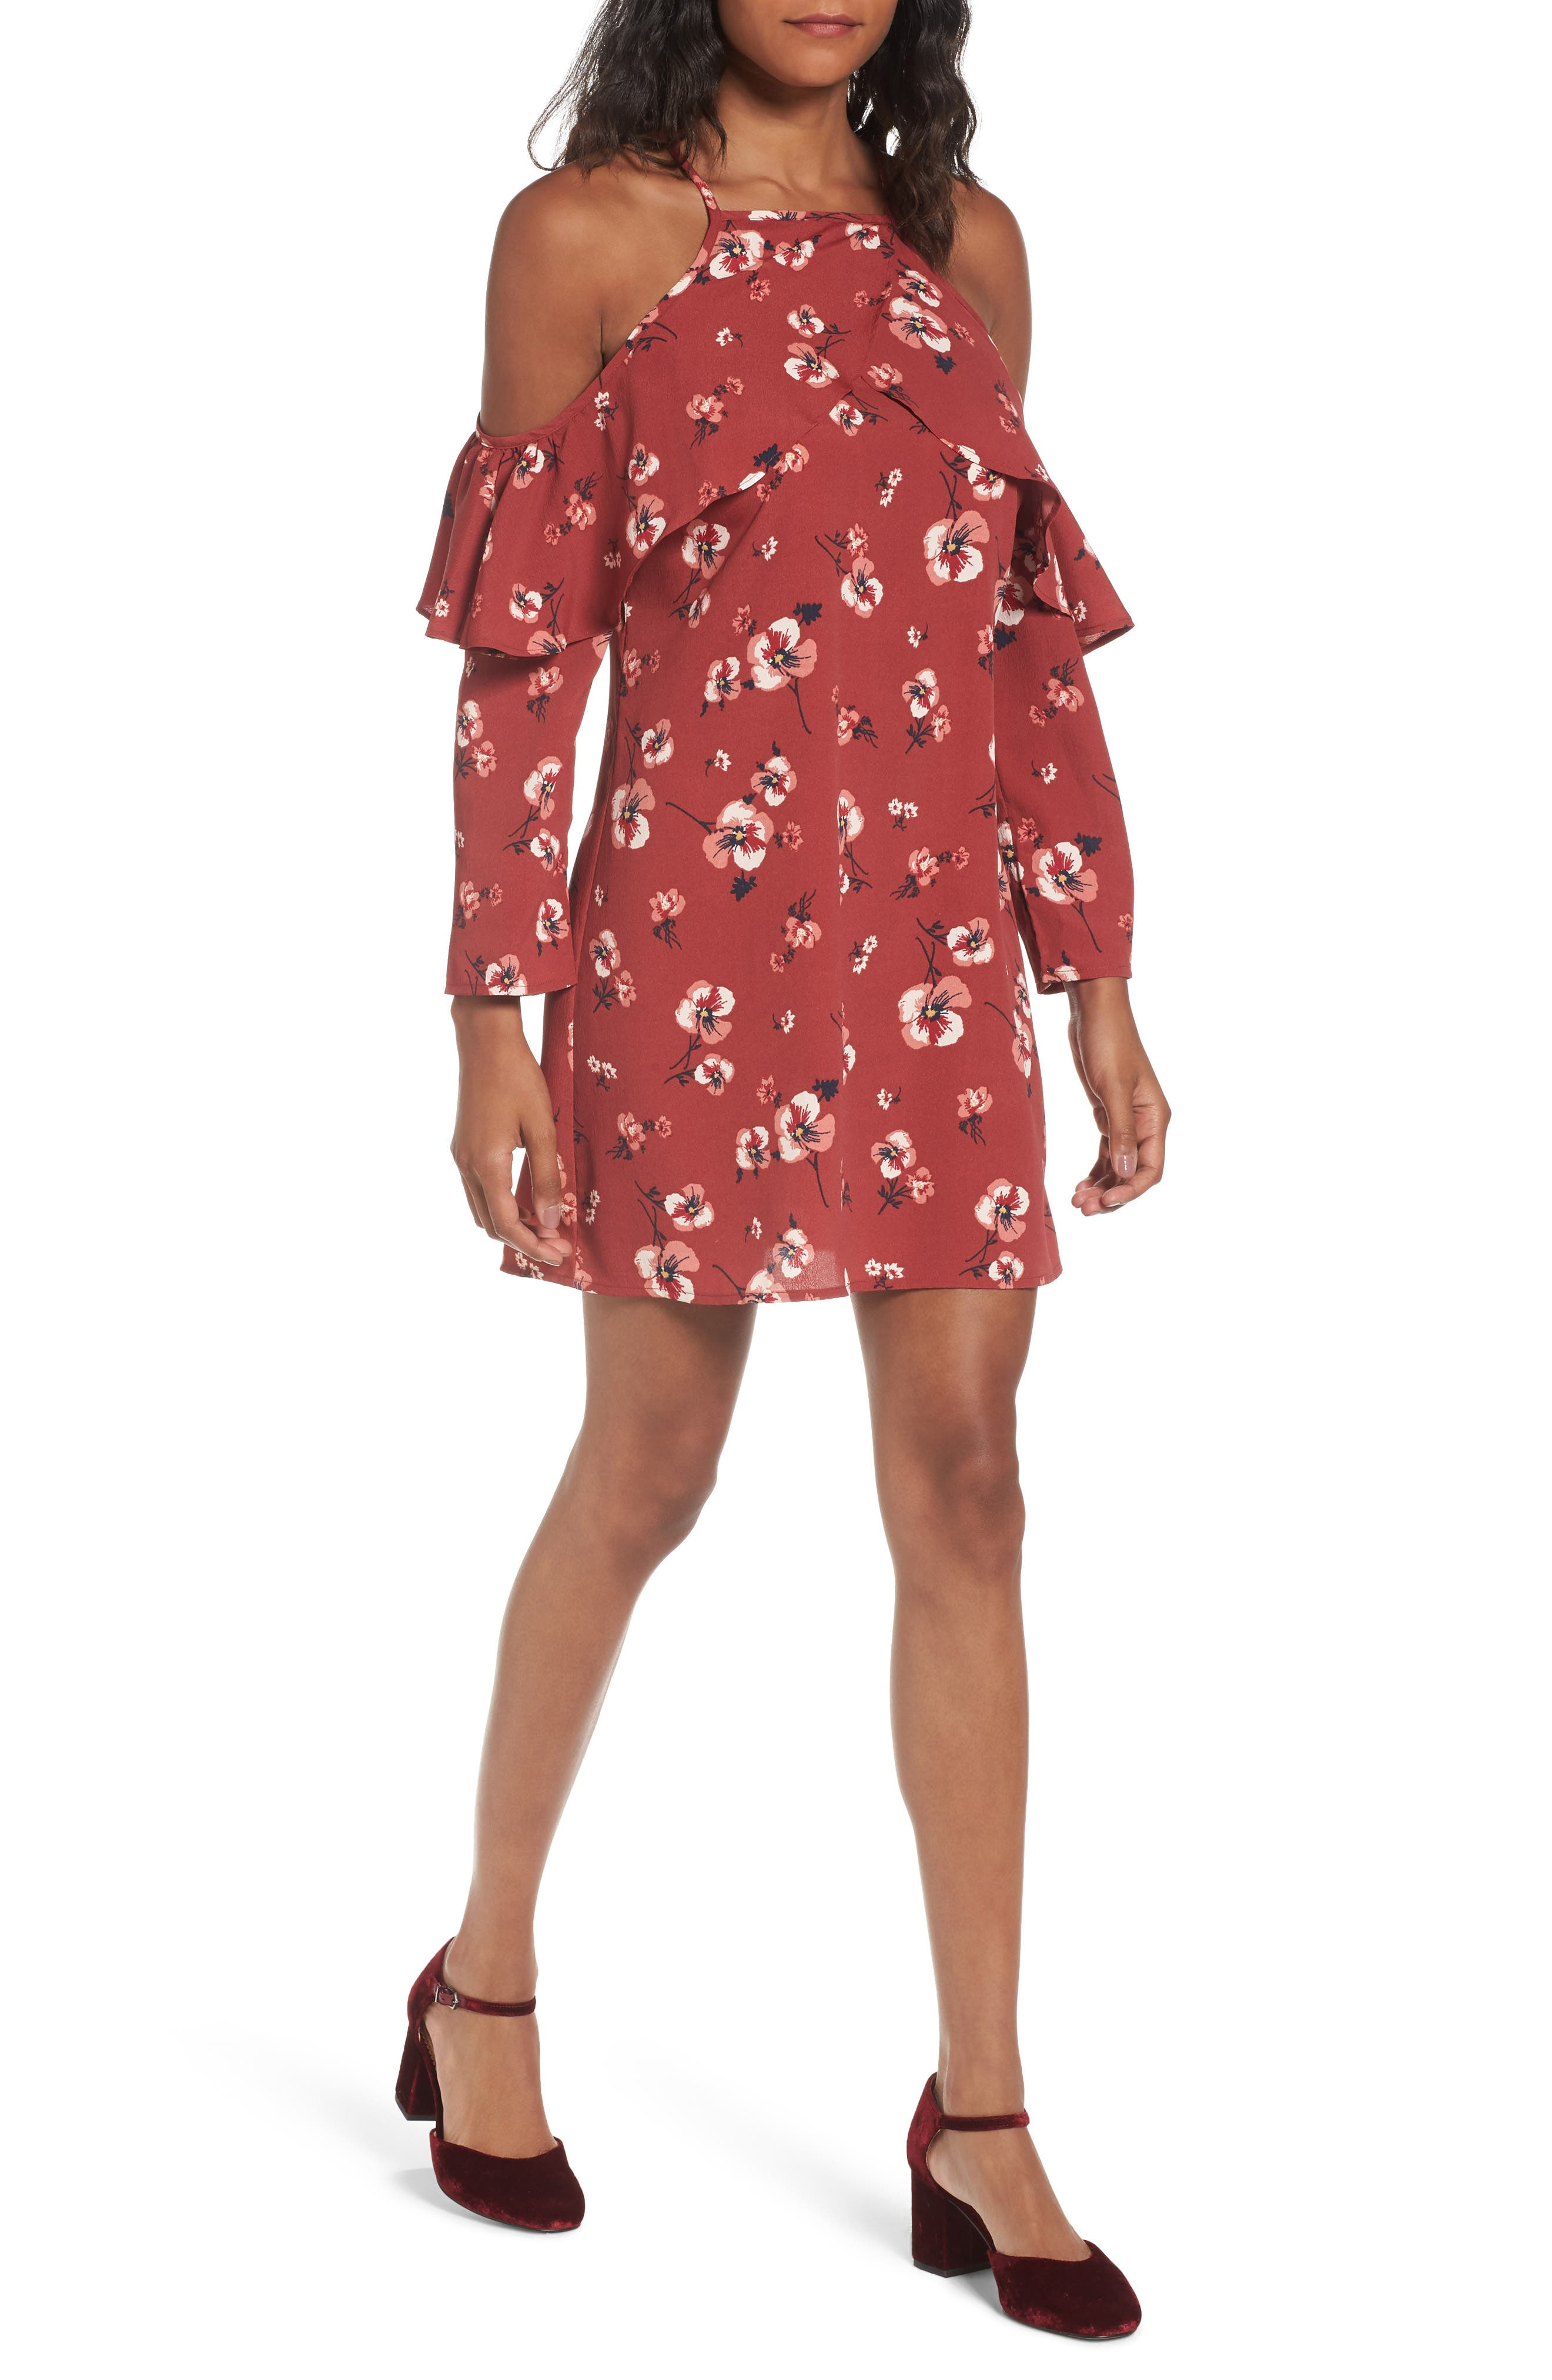 Alternate Image 1 Selected - Band of Gypsies Poppy Print Ruffle Cold Shoulder Dress